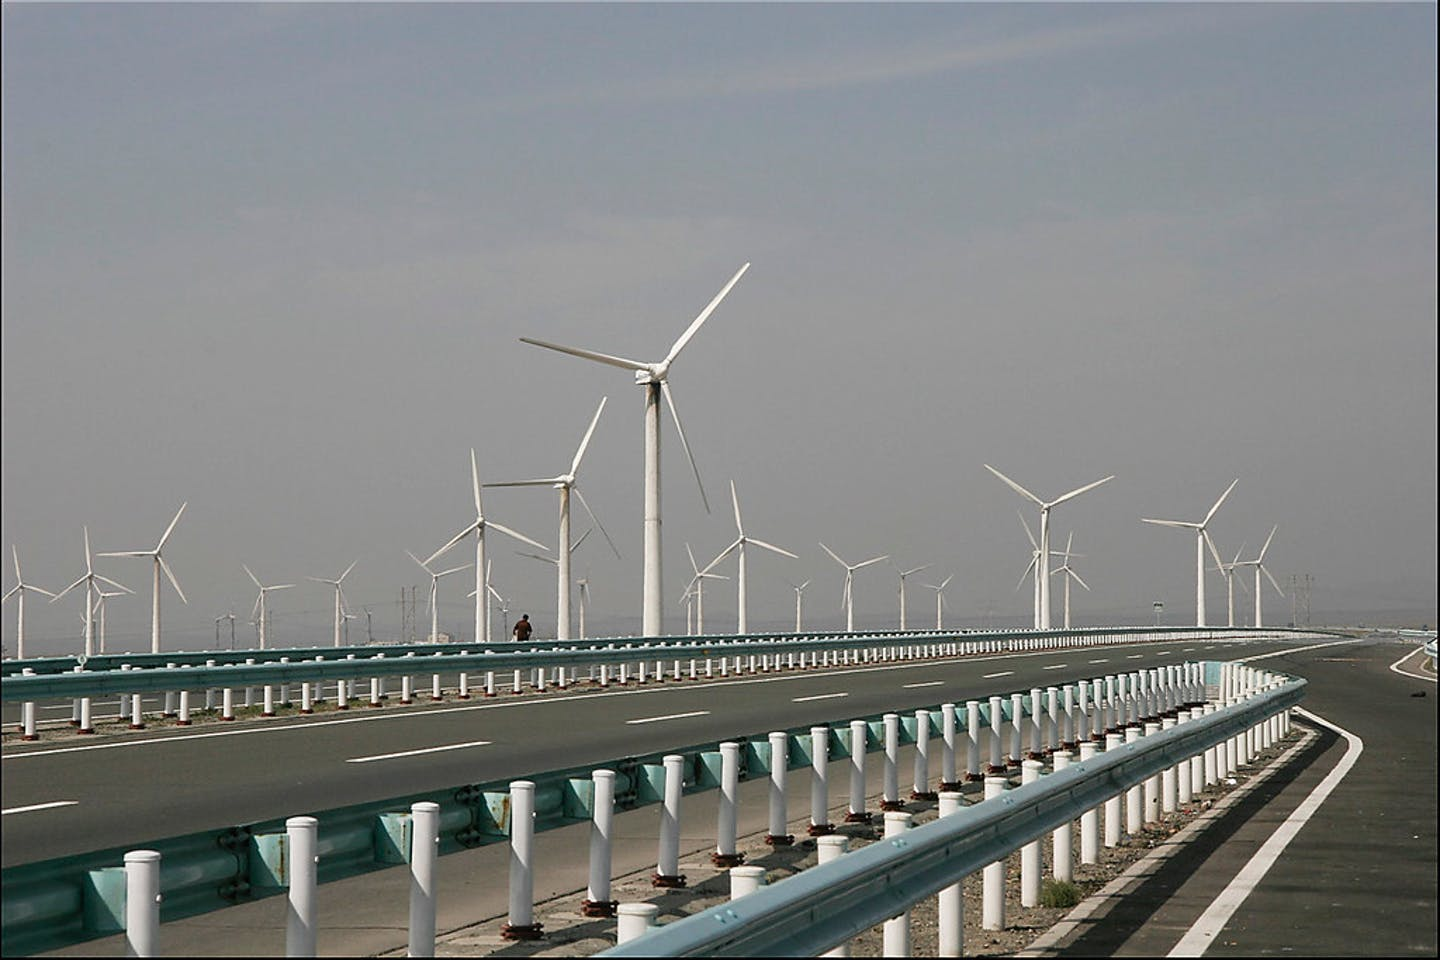 Dabancheng wind farm in China's Xinjiang province